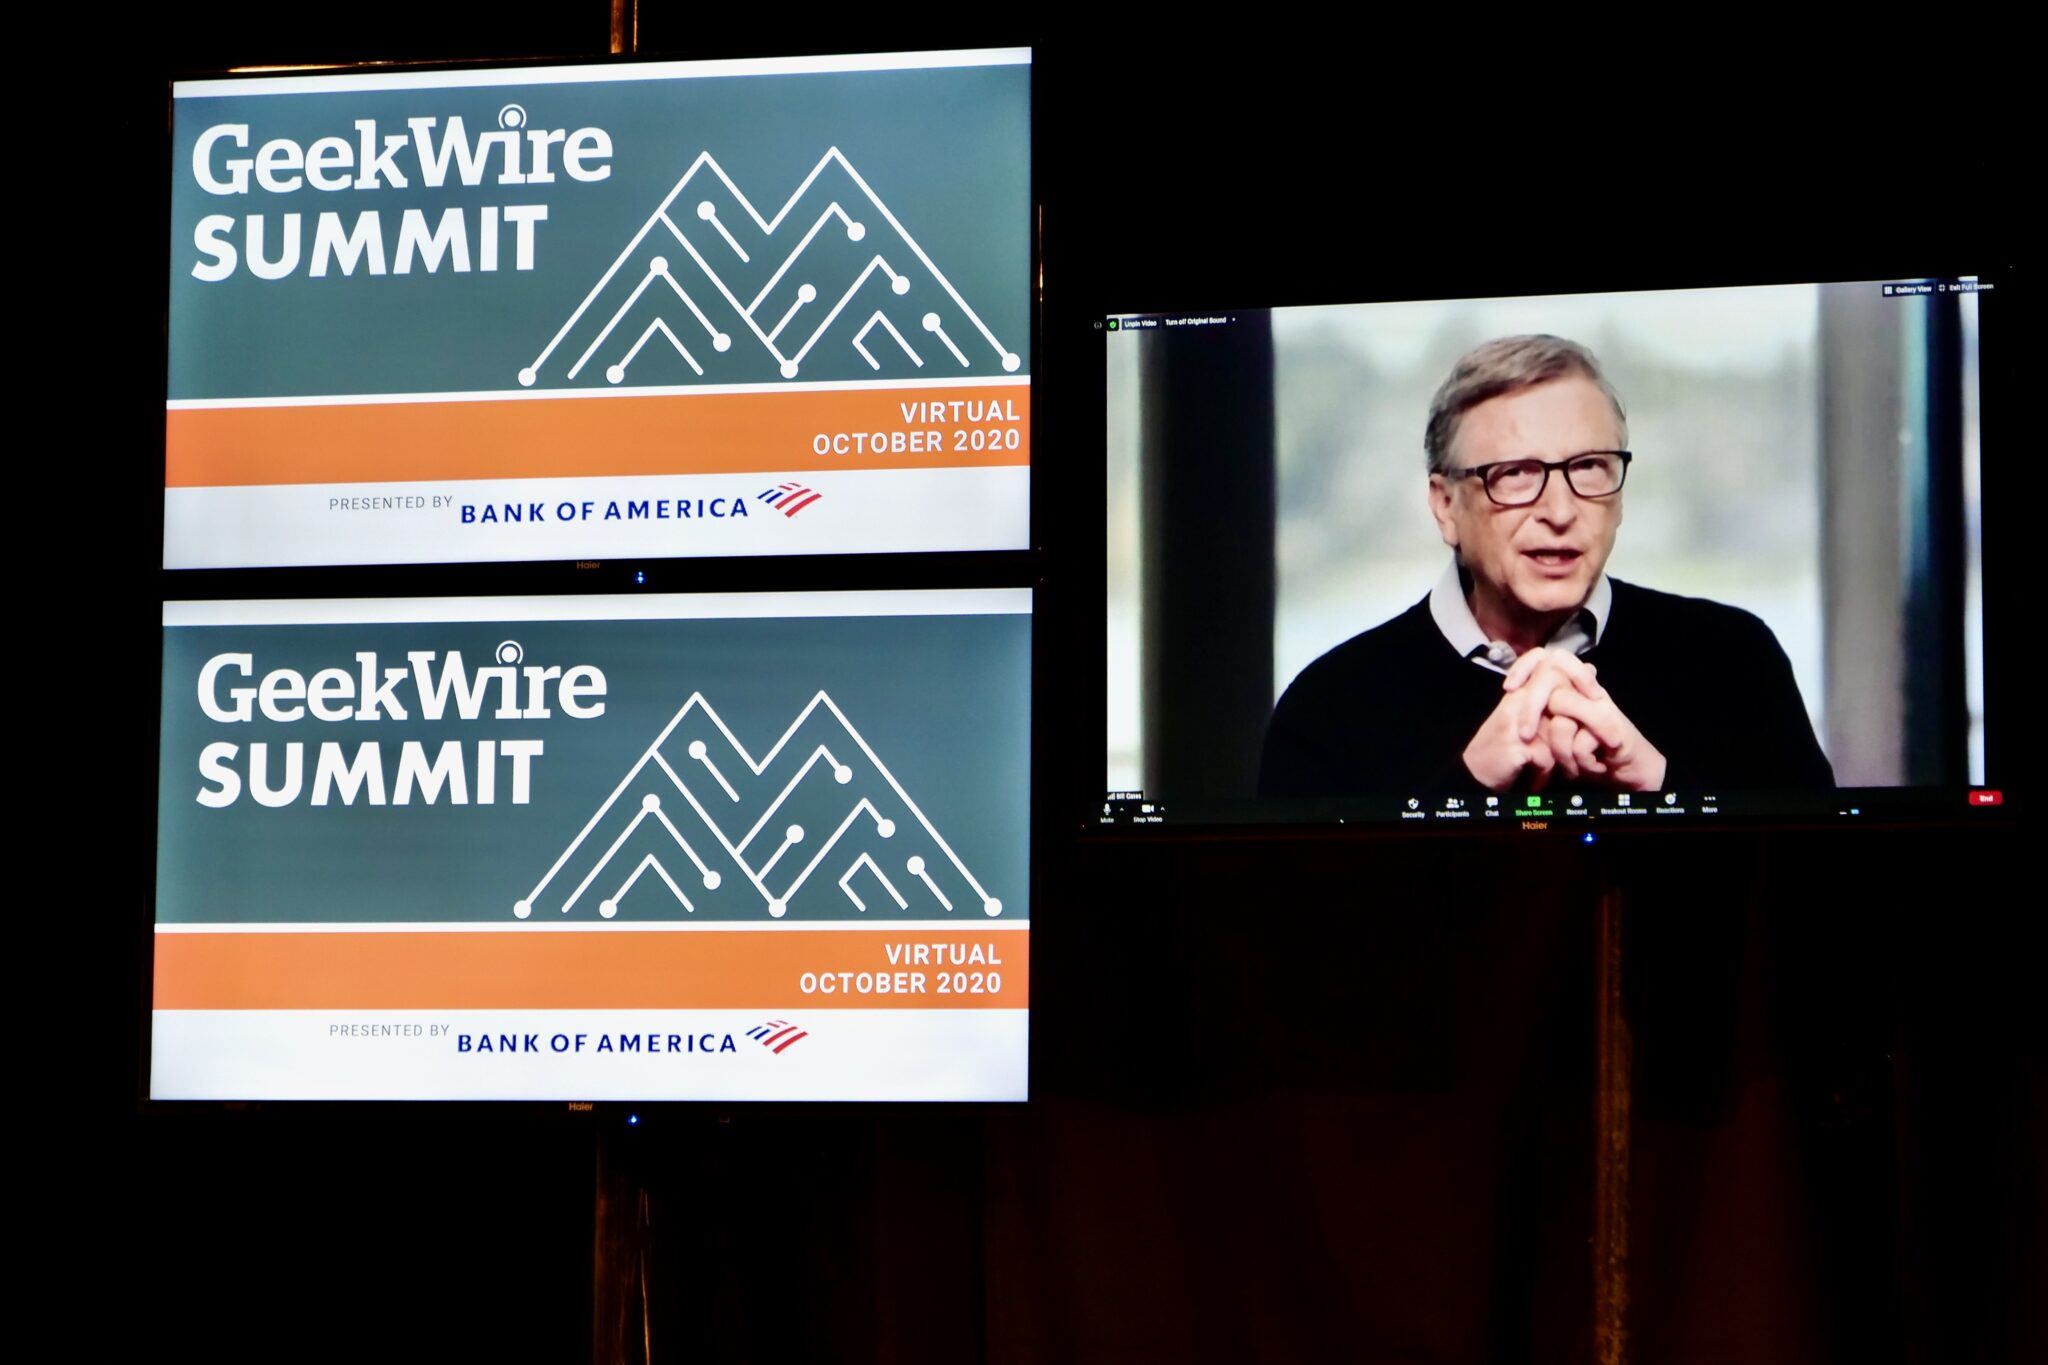 GeekWire Summit 2020: After a newsworthy first week, here is what's next at our signature tech event